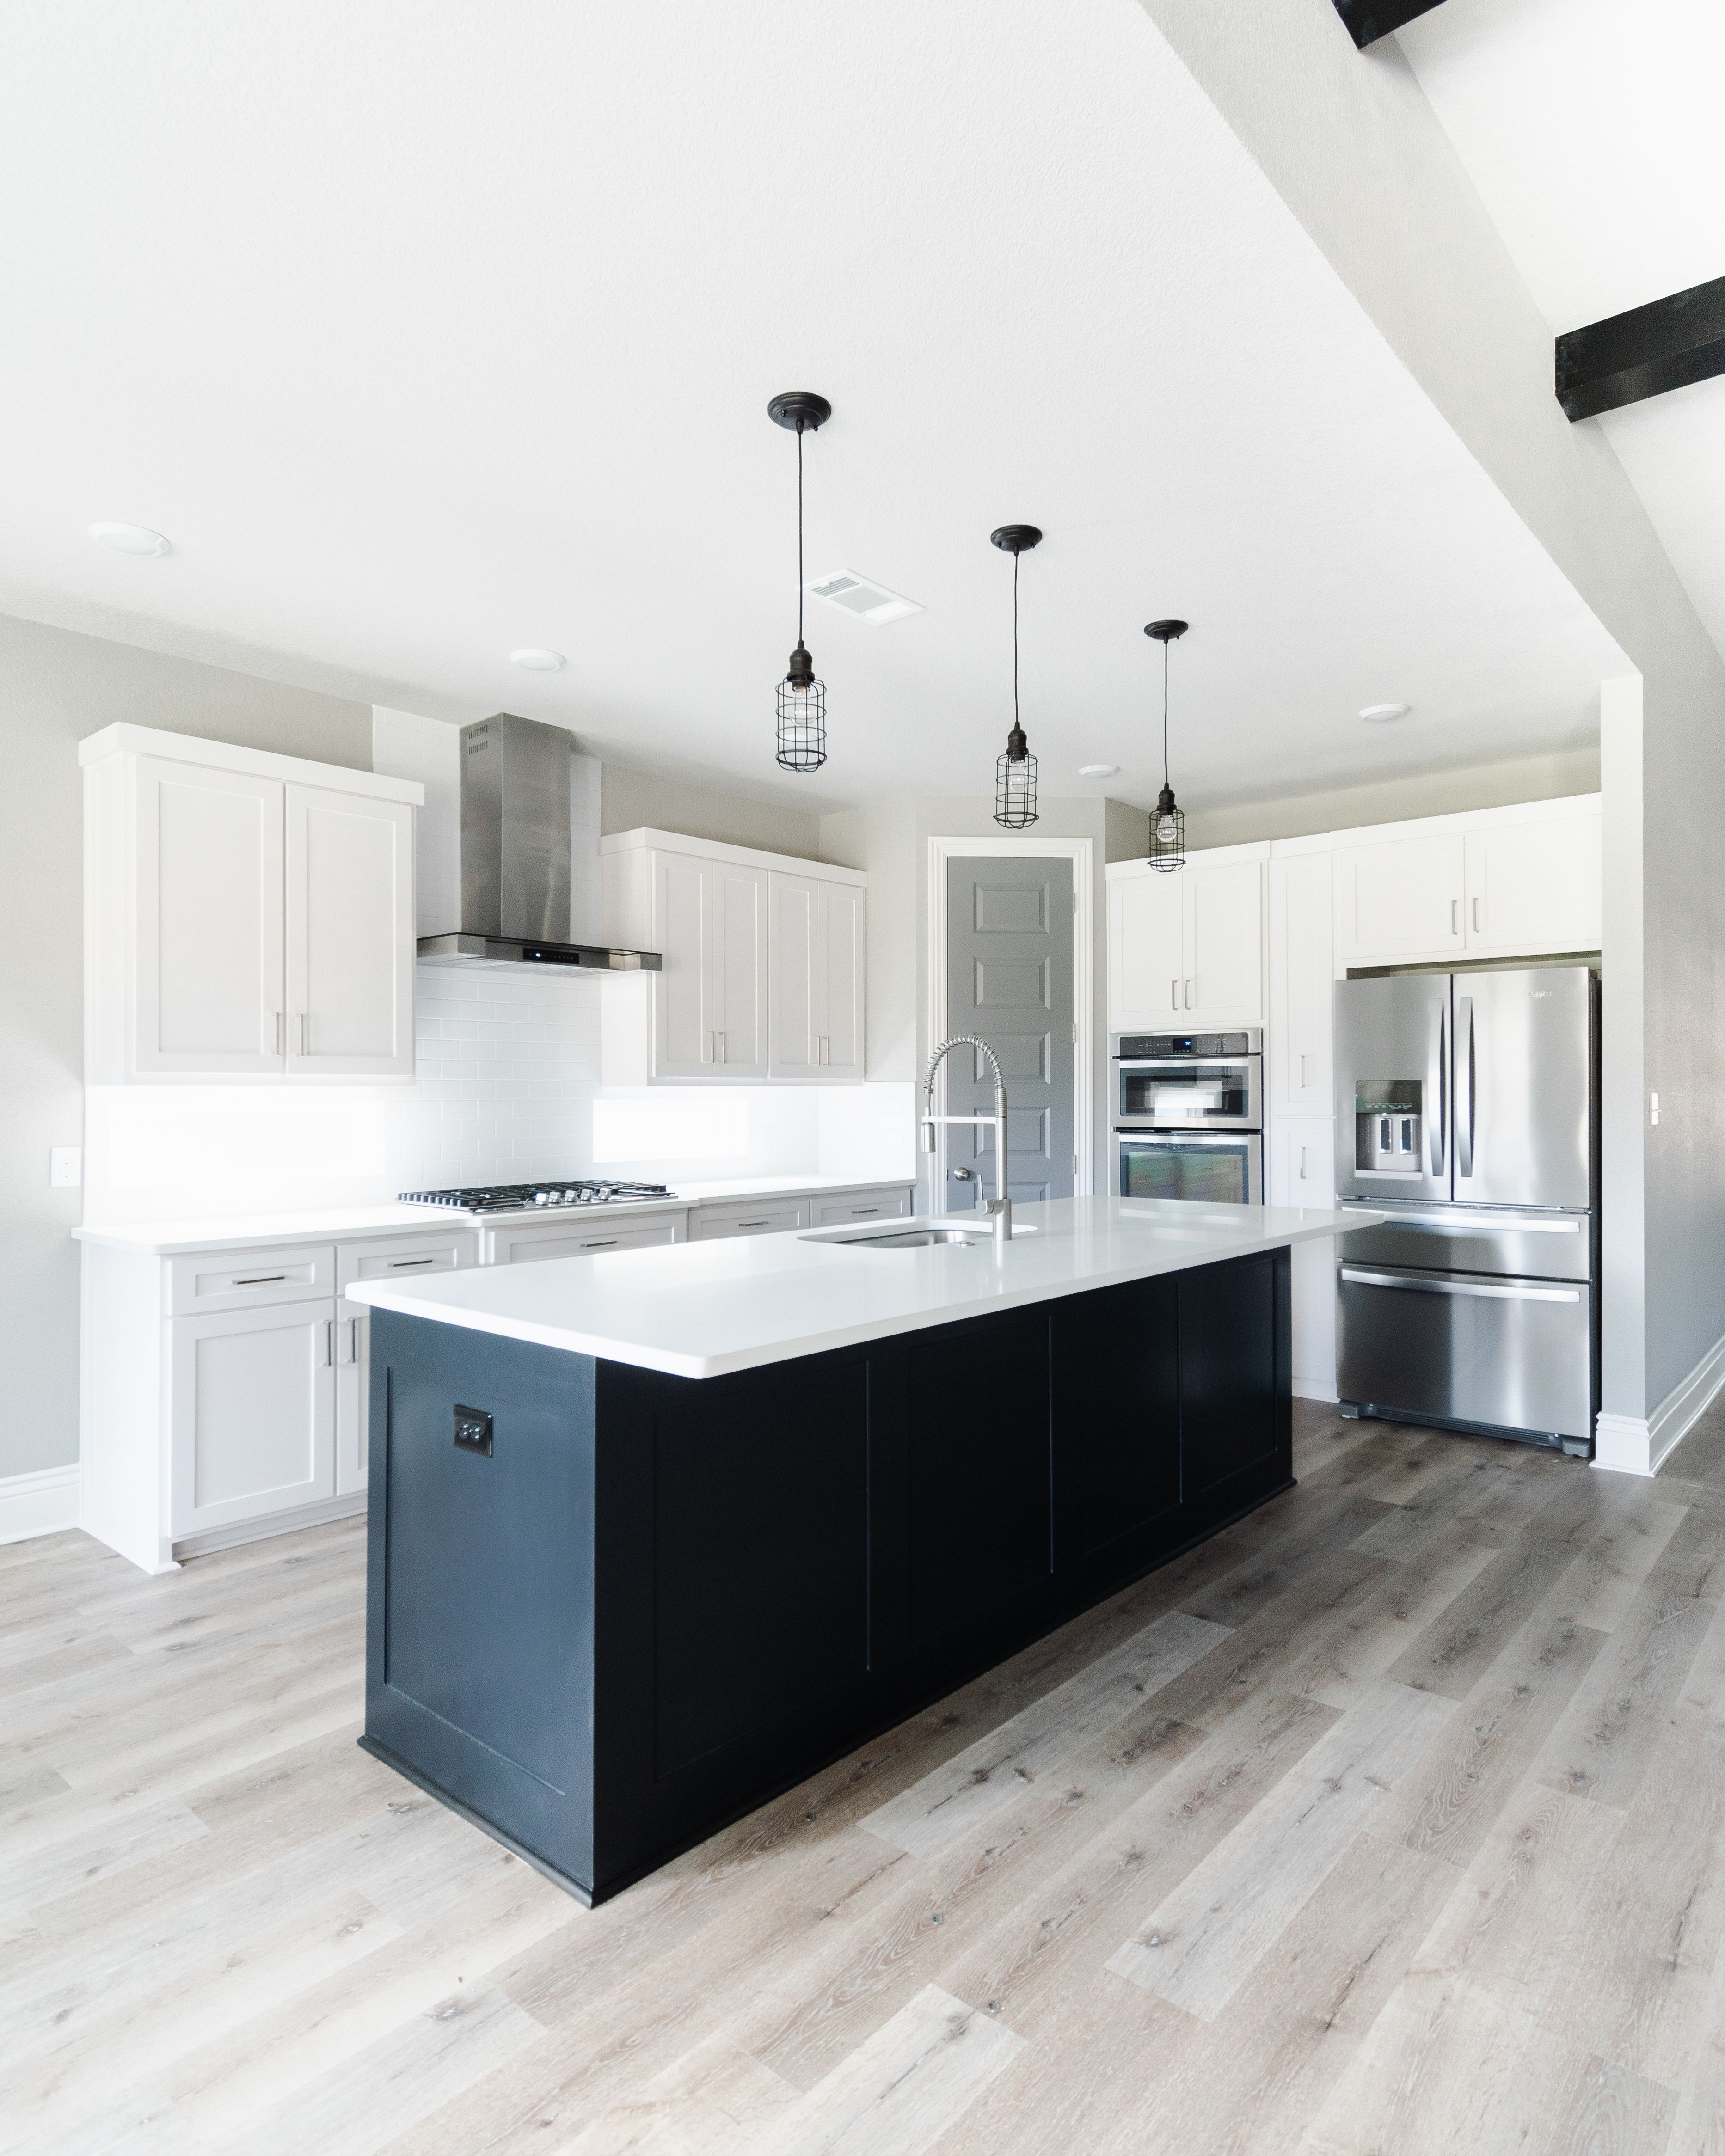 Modern Industrial White Kitchen With Black Island White Modern Kitchen Interior Design Kitchen Kitchen Design